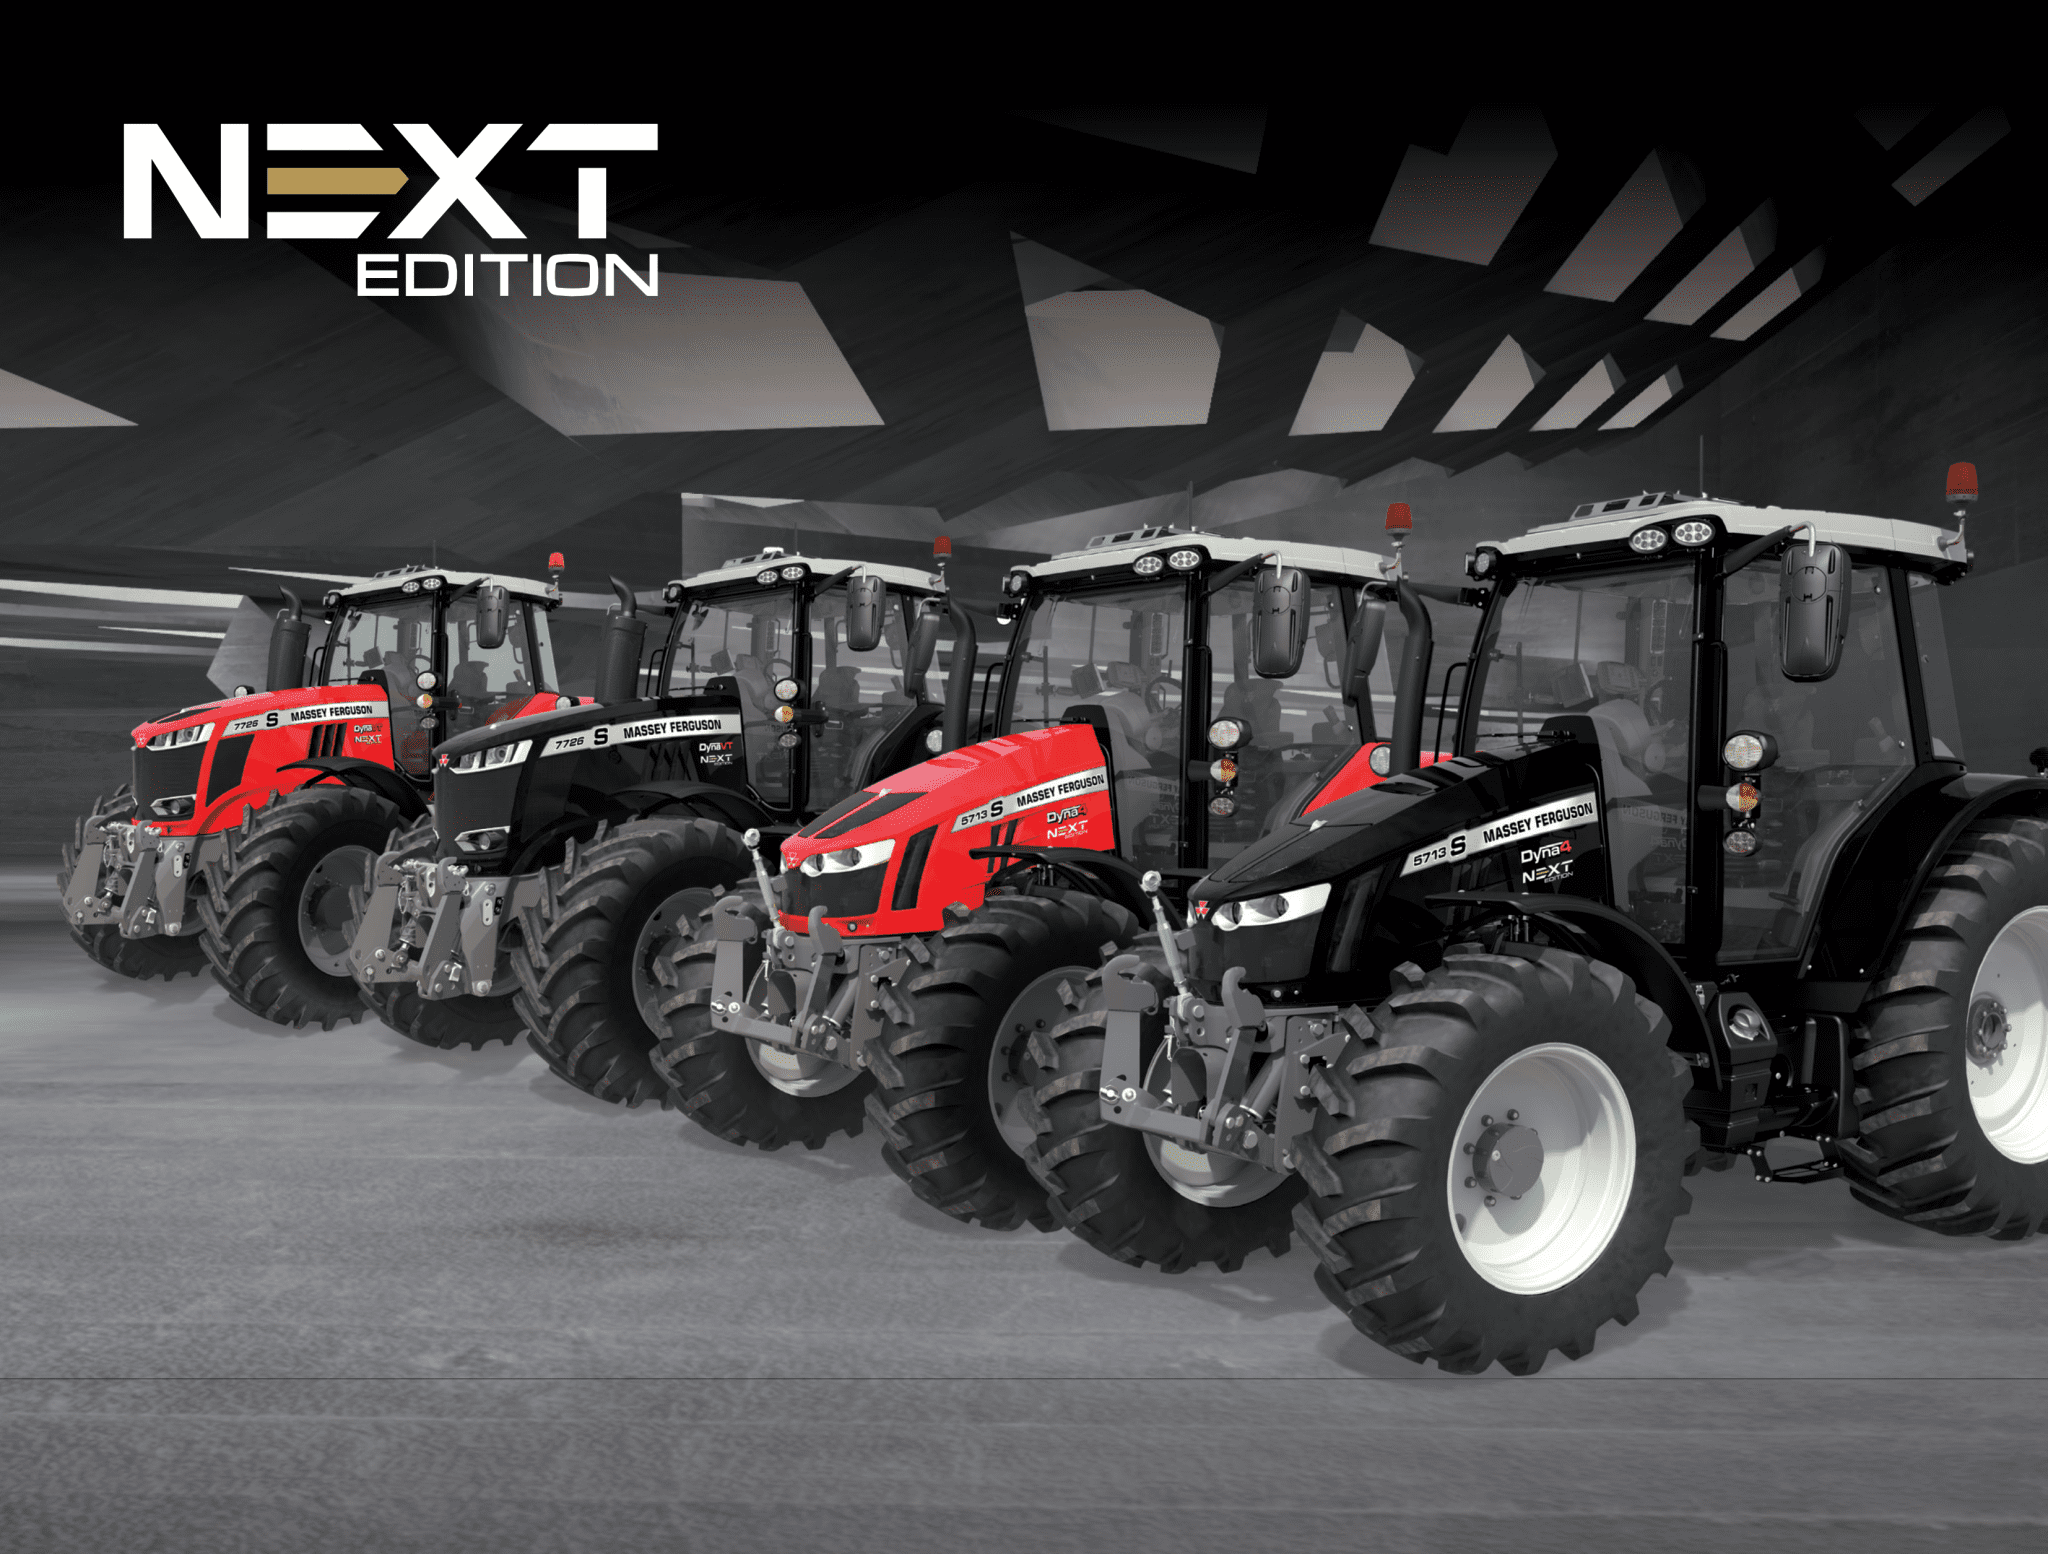 Next Edition from Massey Ferguson